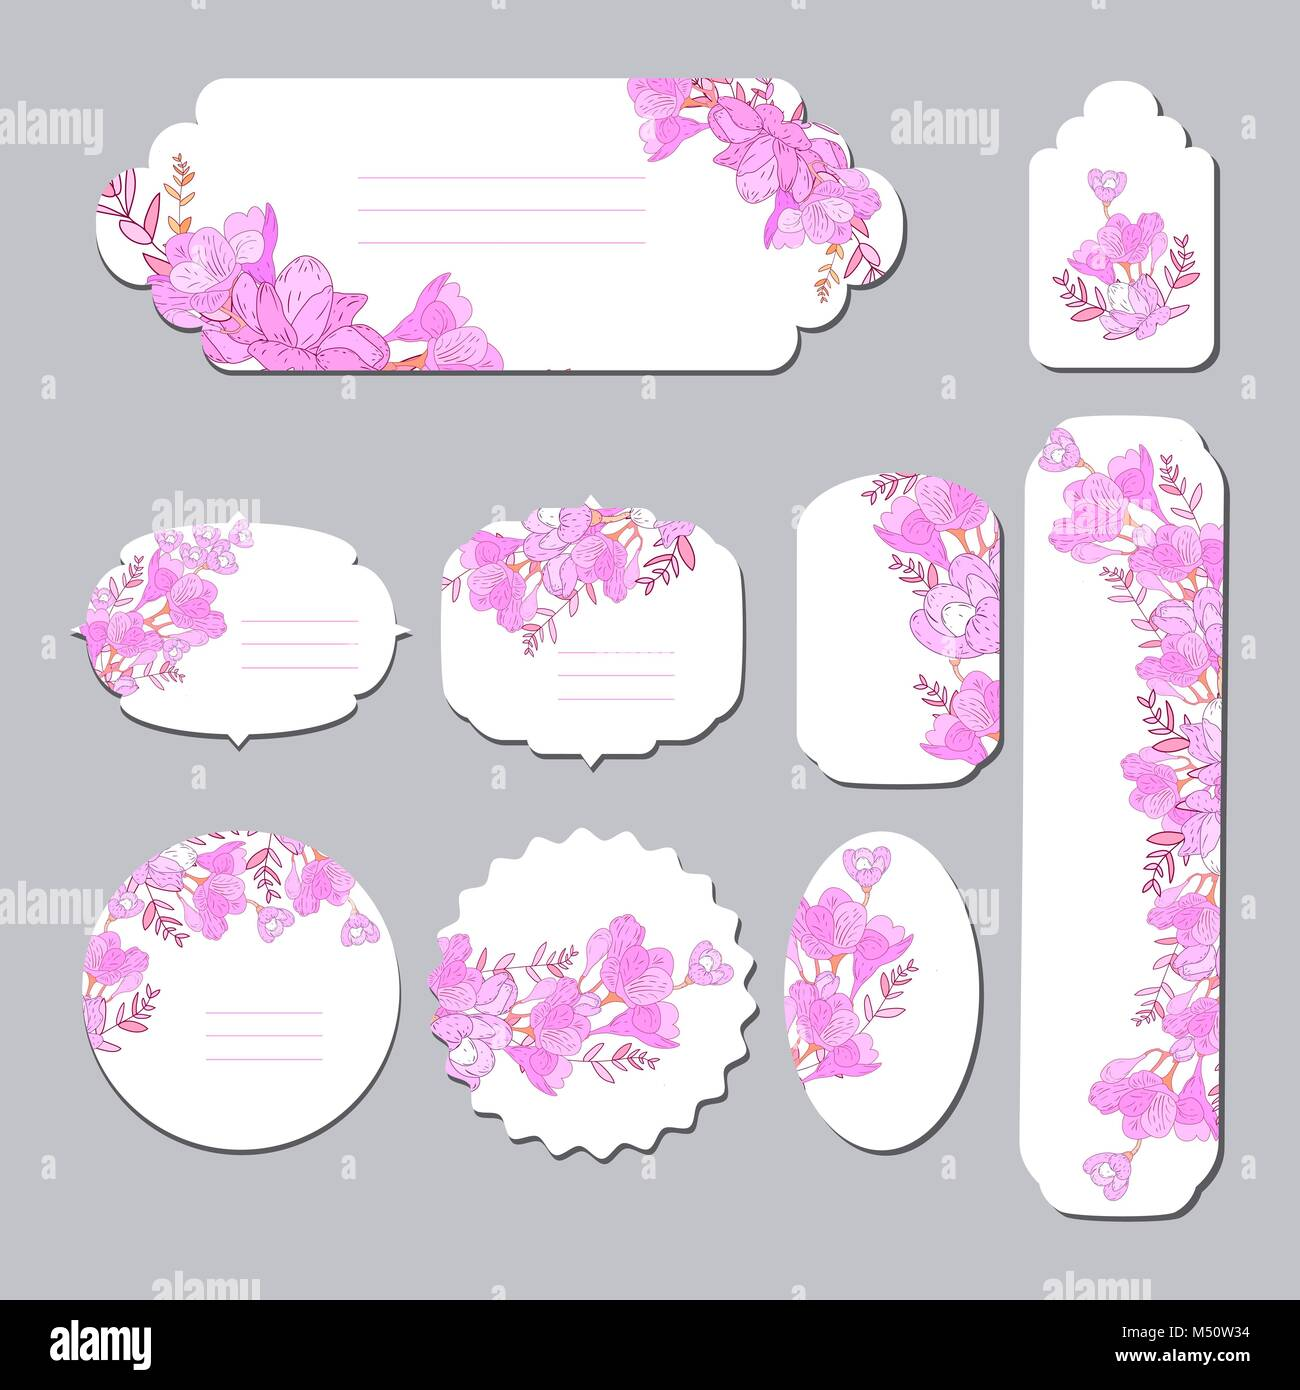 floral spring templates with cute flowers for romantic and easter